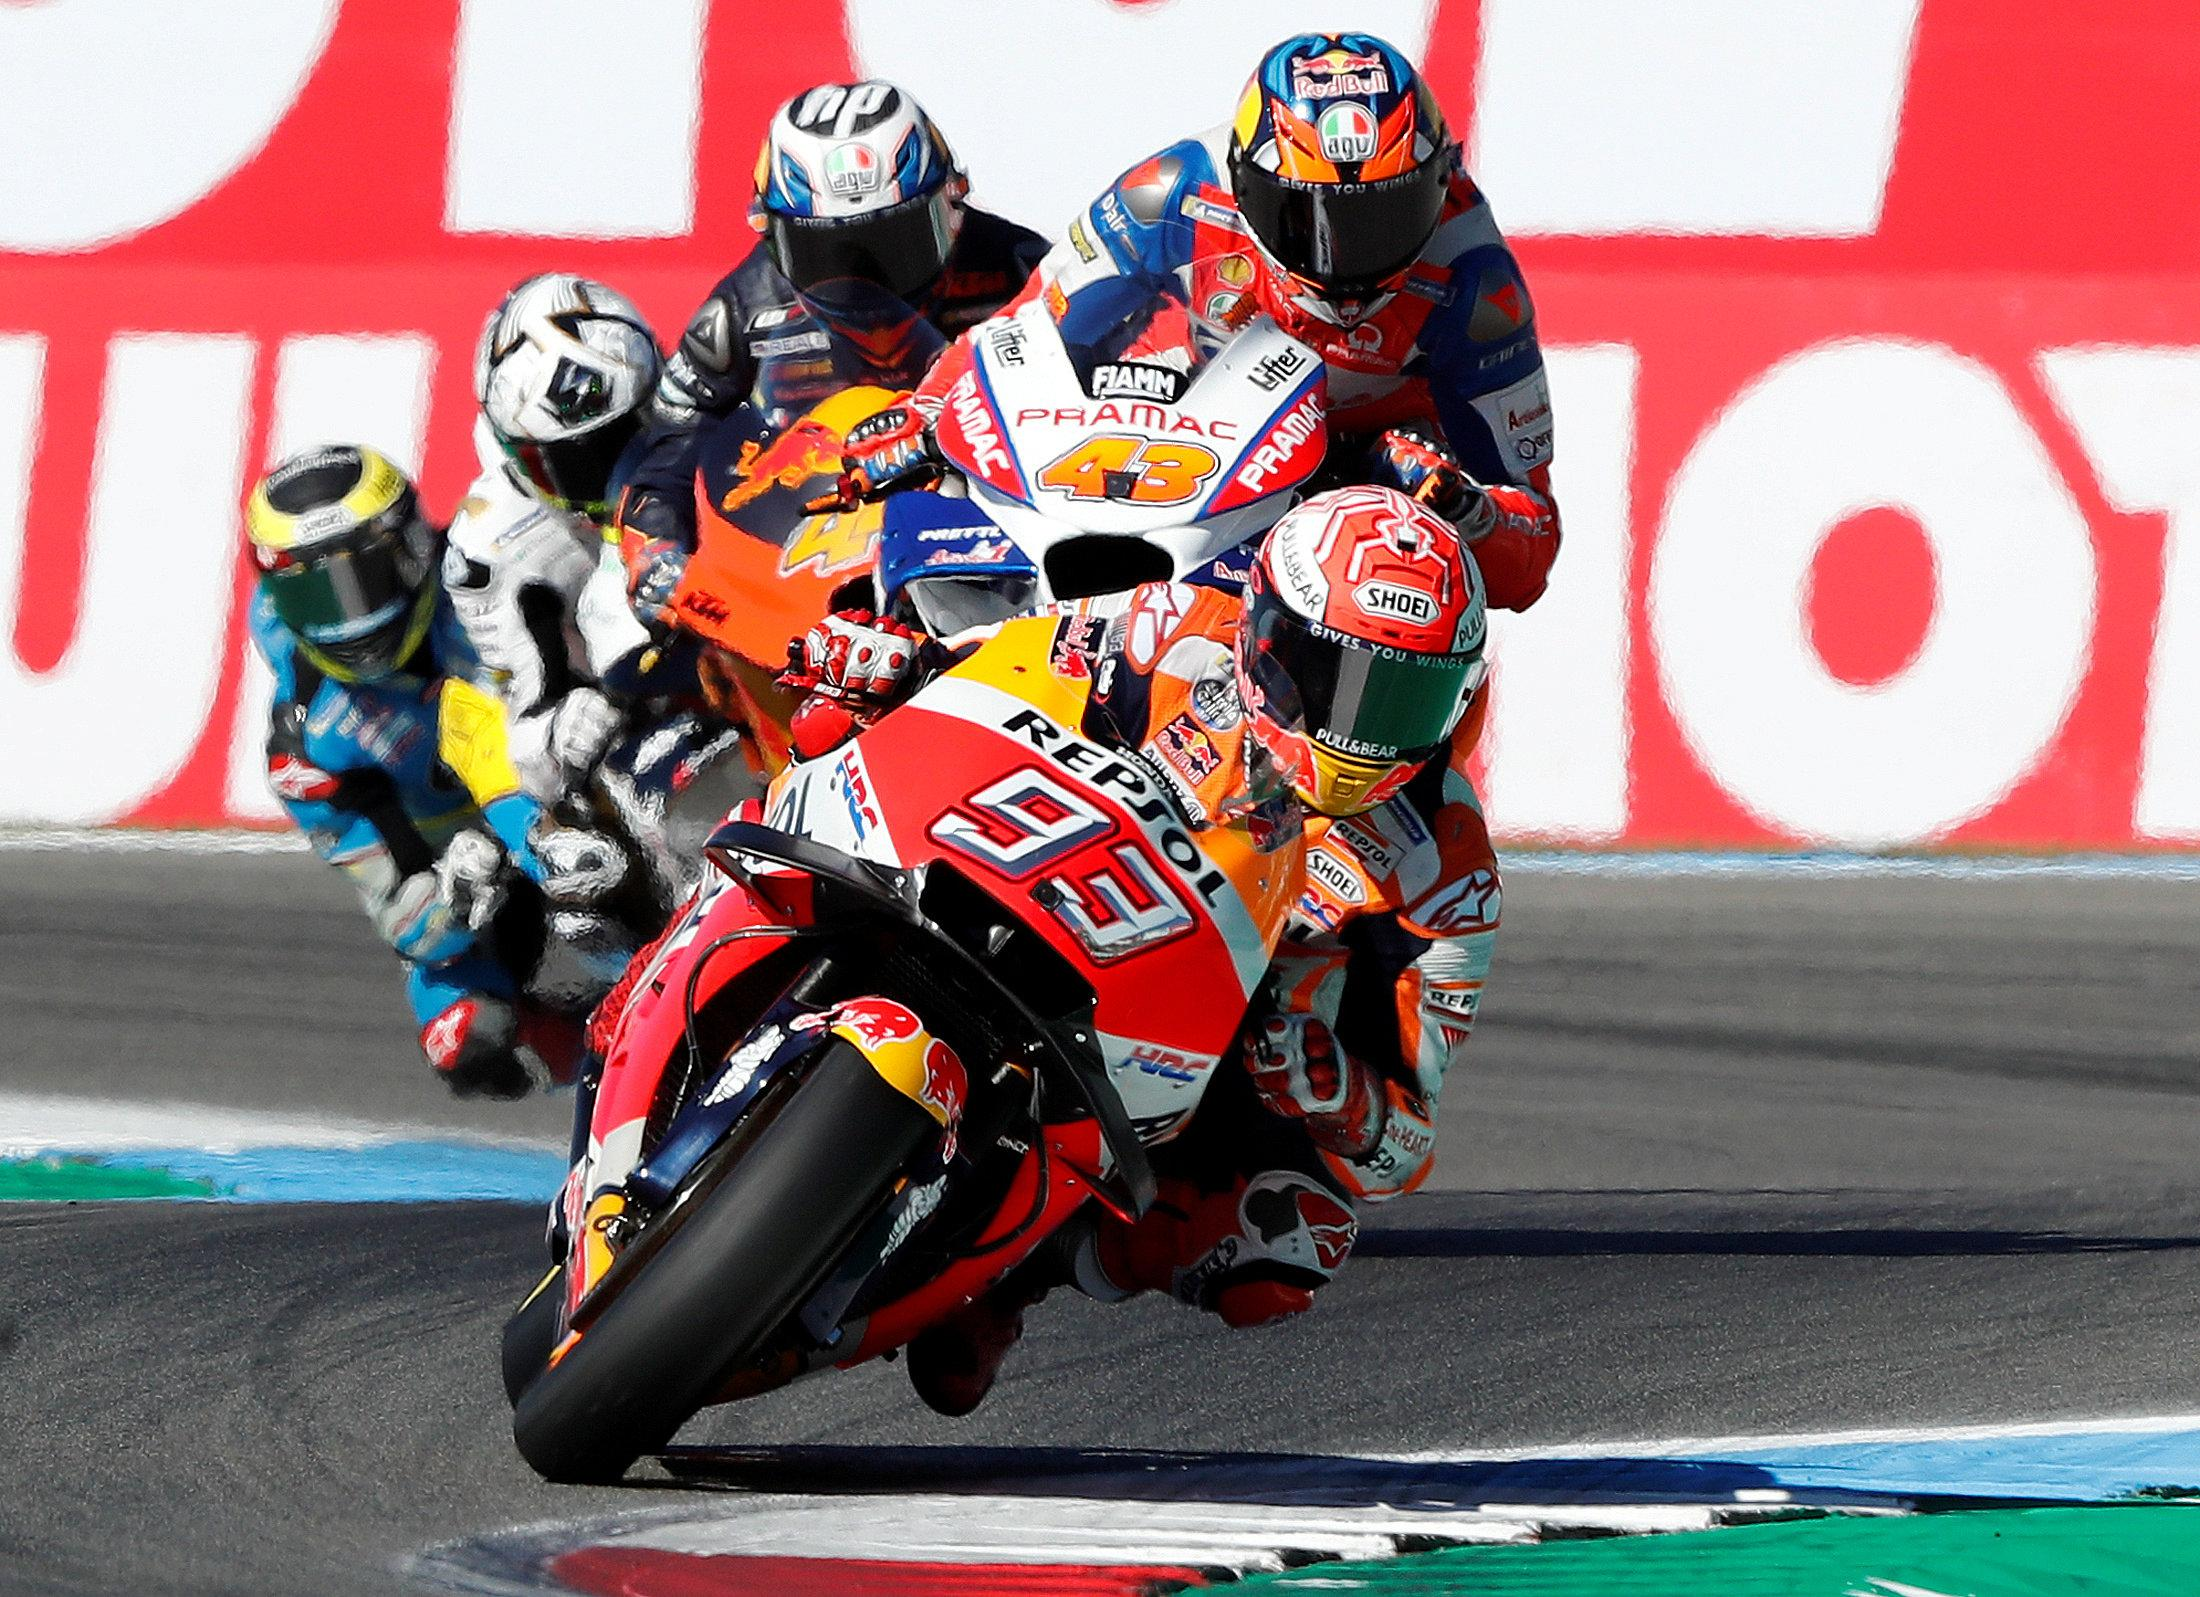 Marc Marquez dominated in Assen to record victory at the Dutch GP